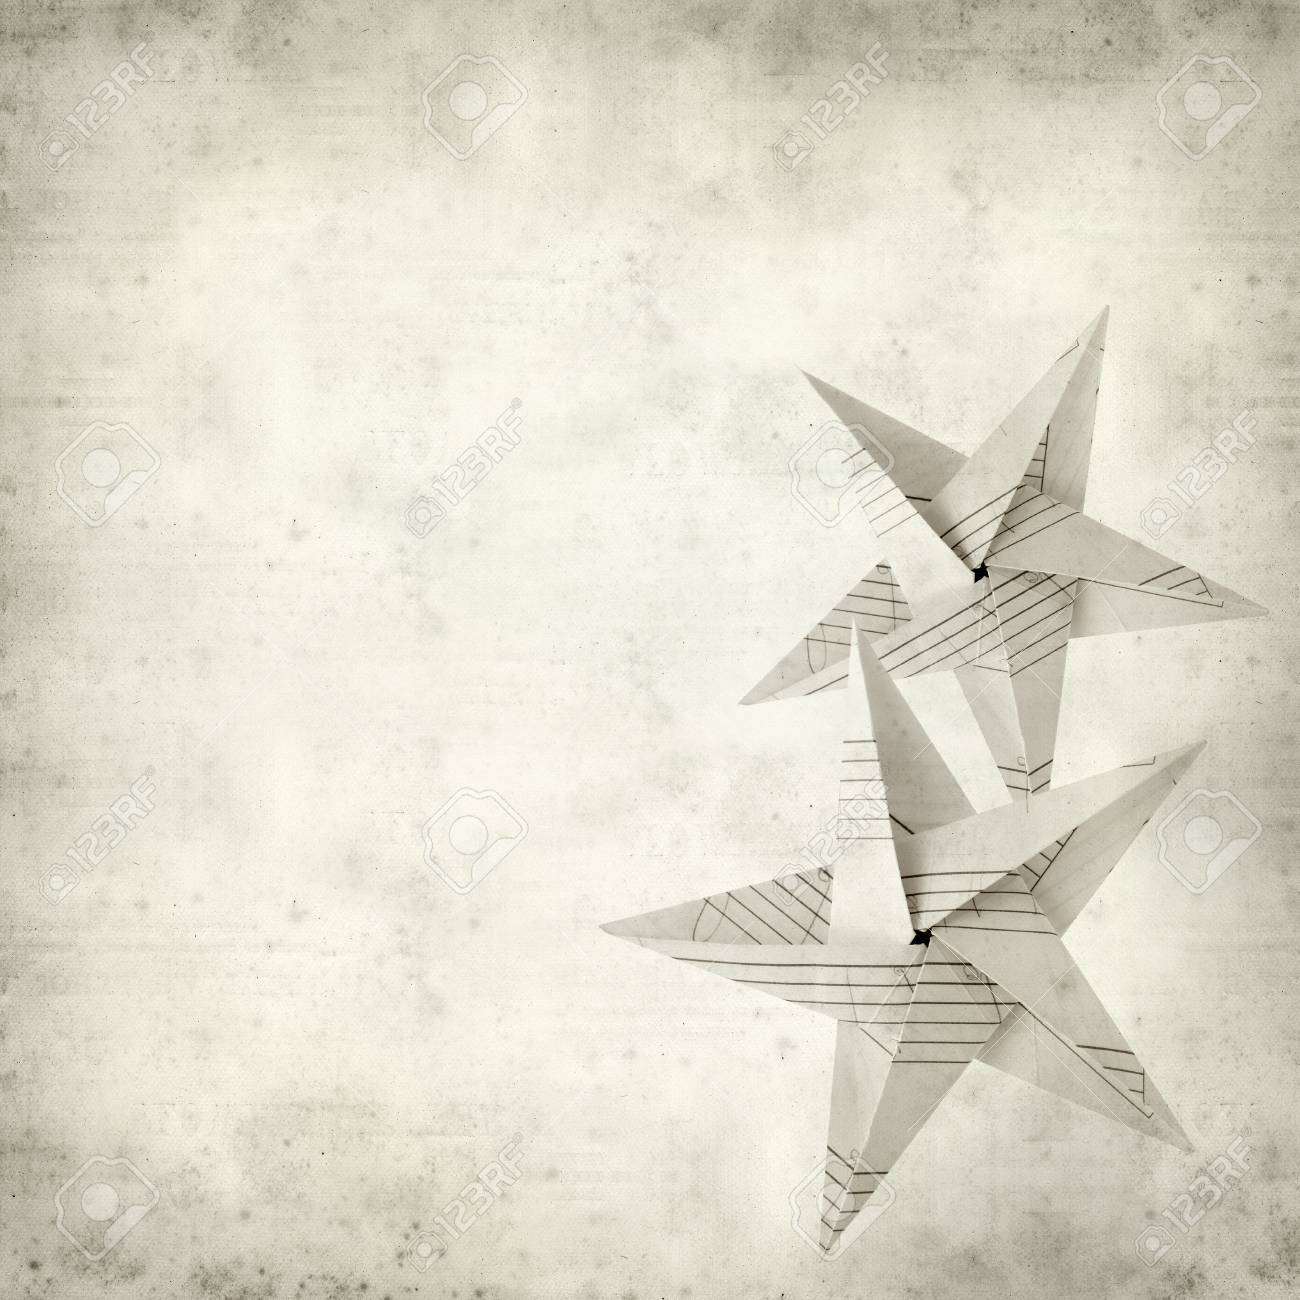 textured old paper background with folded paper star stock photo